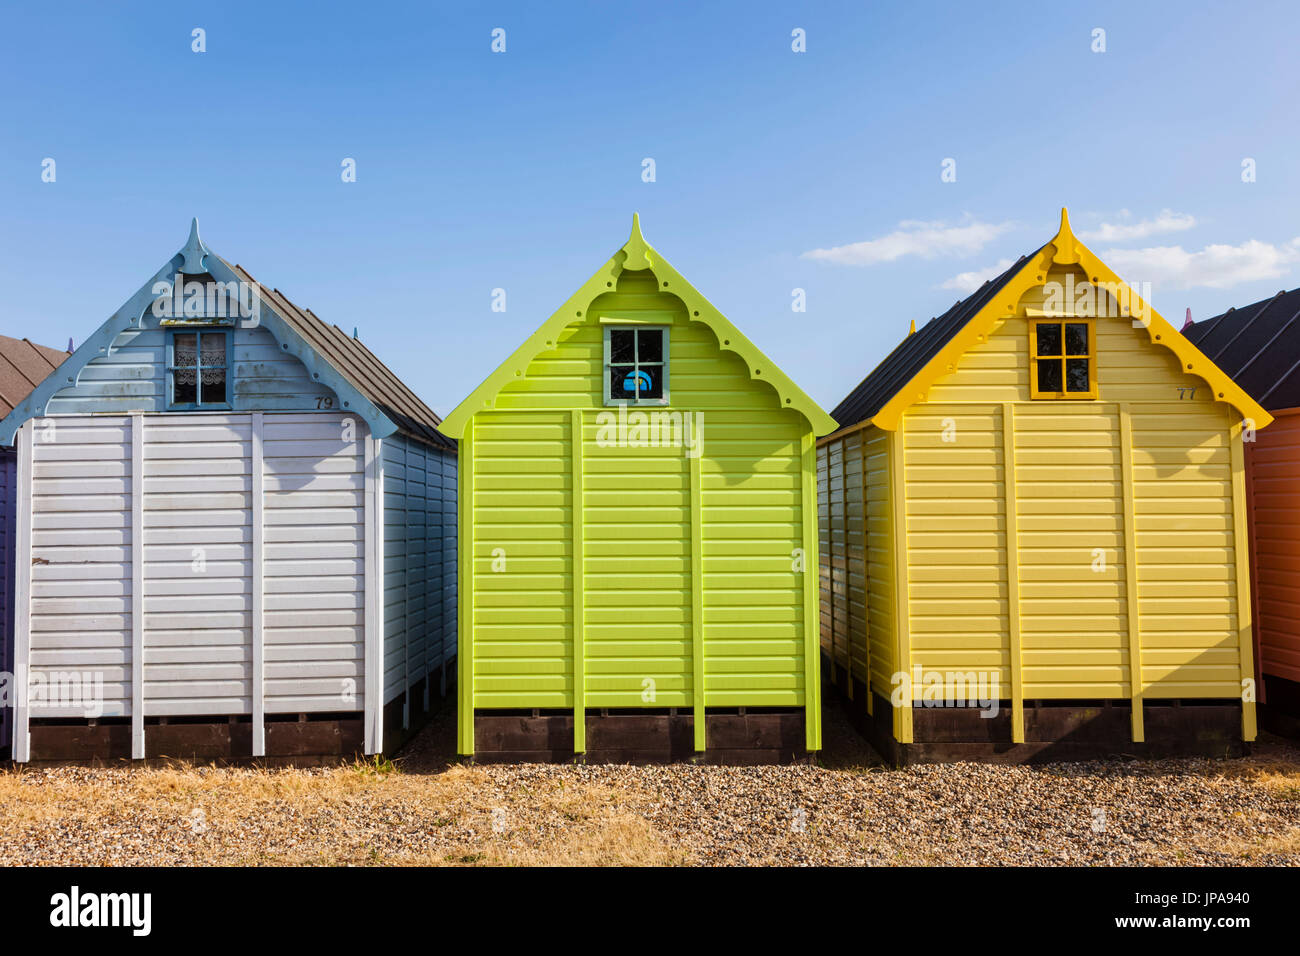 Essex Beach Huts Stock Photos & Essex Beach Huts Stock Images - Alamy